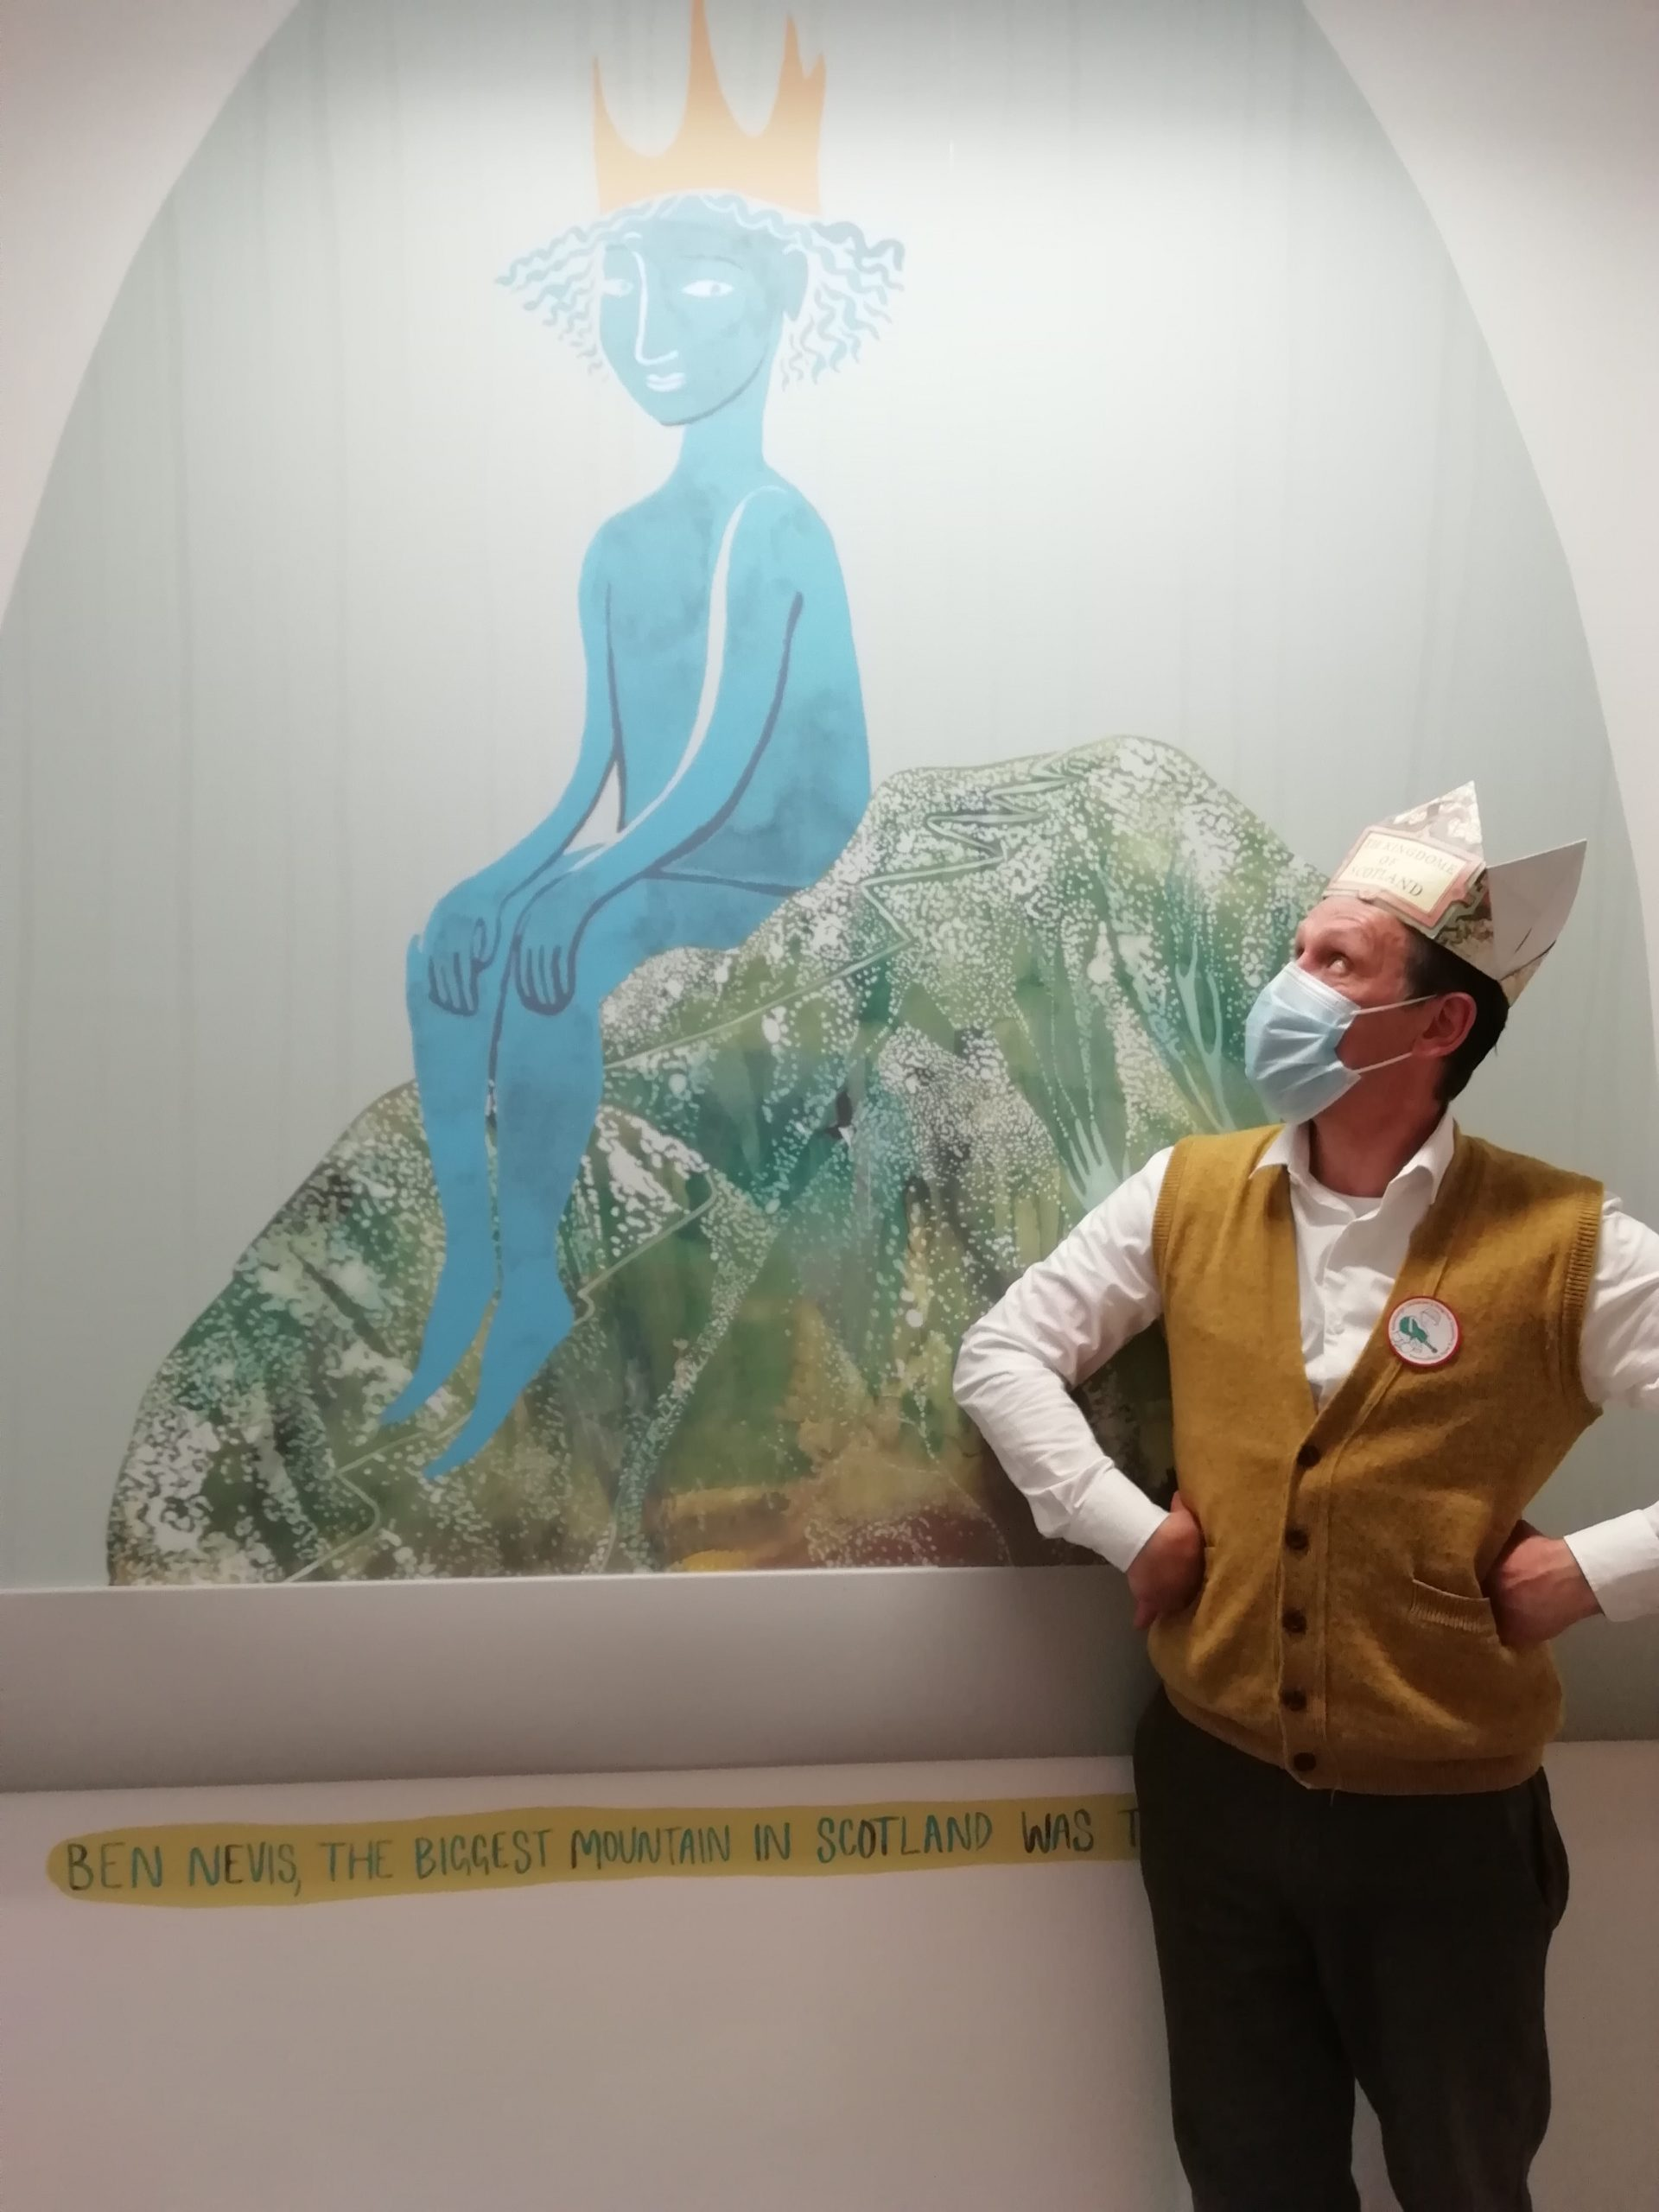 Andy Cannon wearing a crown and looking at a wall painting